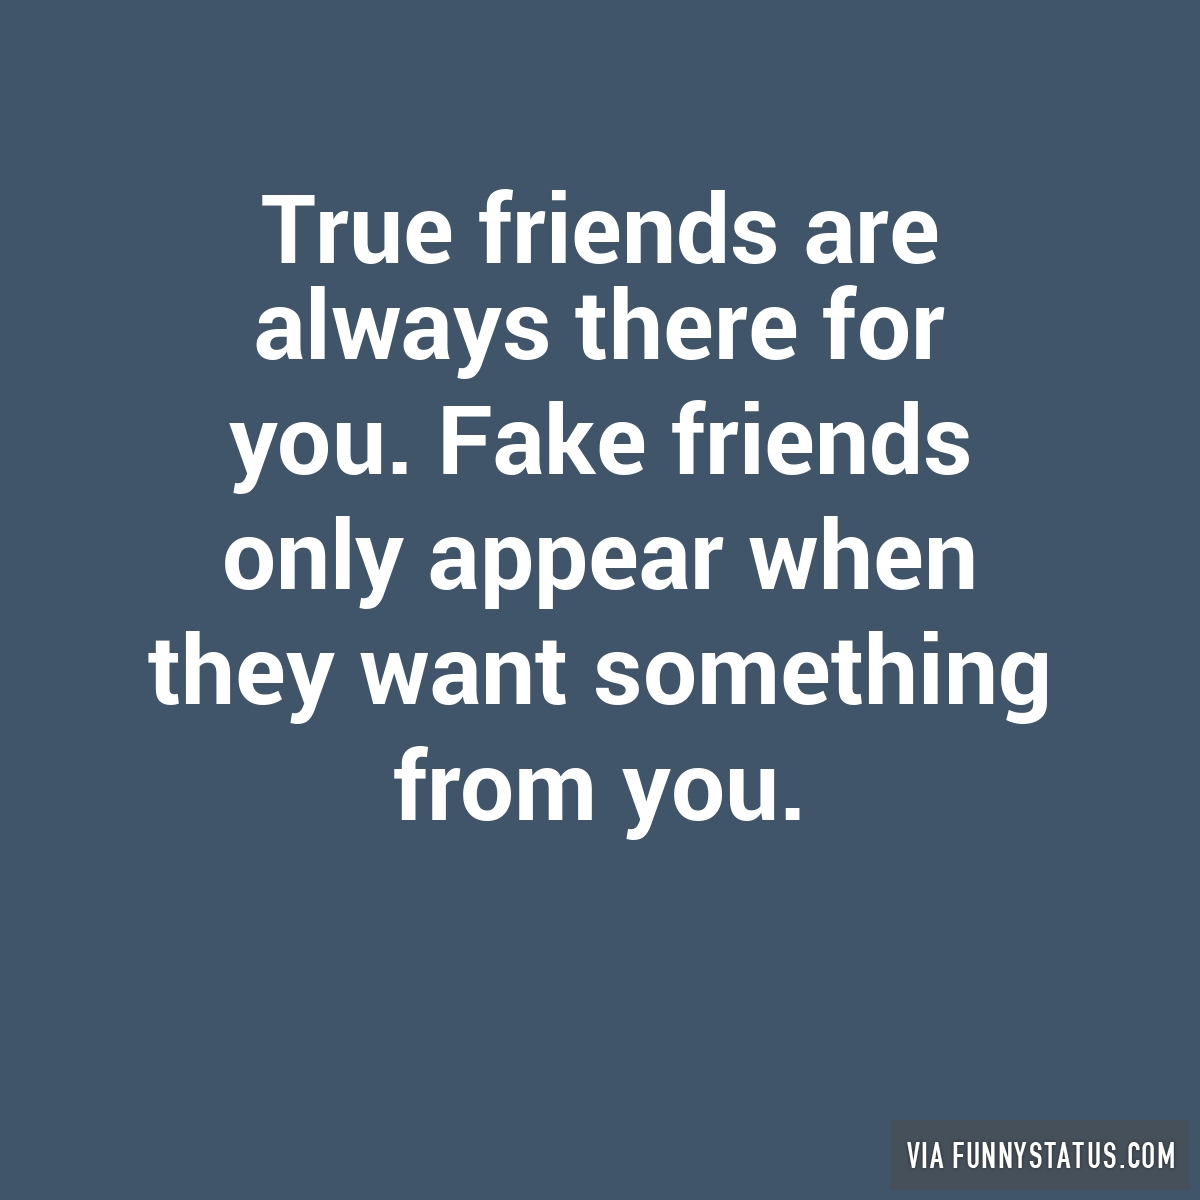 Quotes About Fake Friendship Fake Friend Quotes For Facebook Status Fake Friends Quotes About